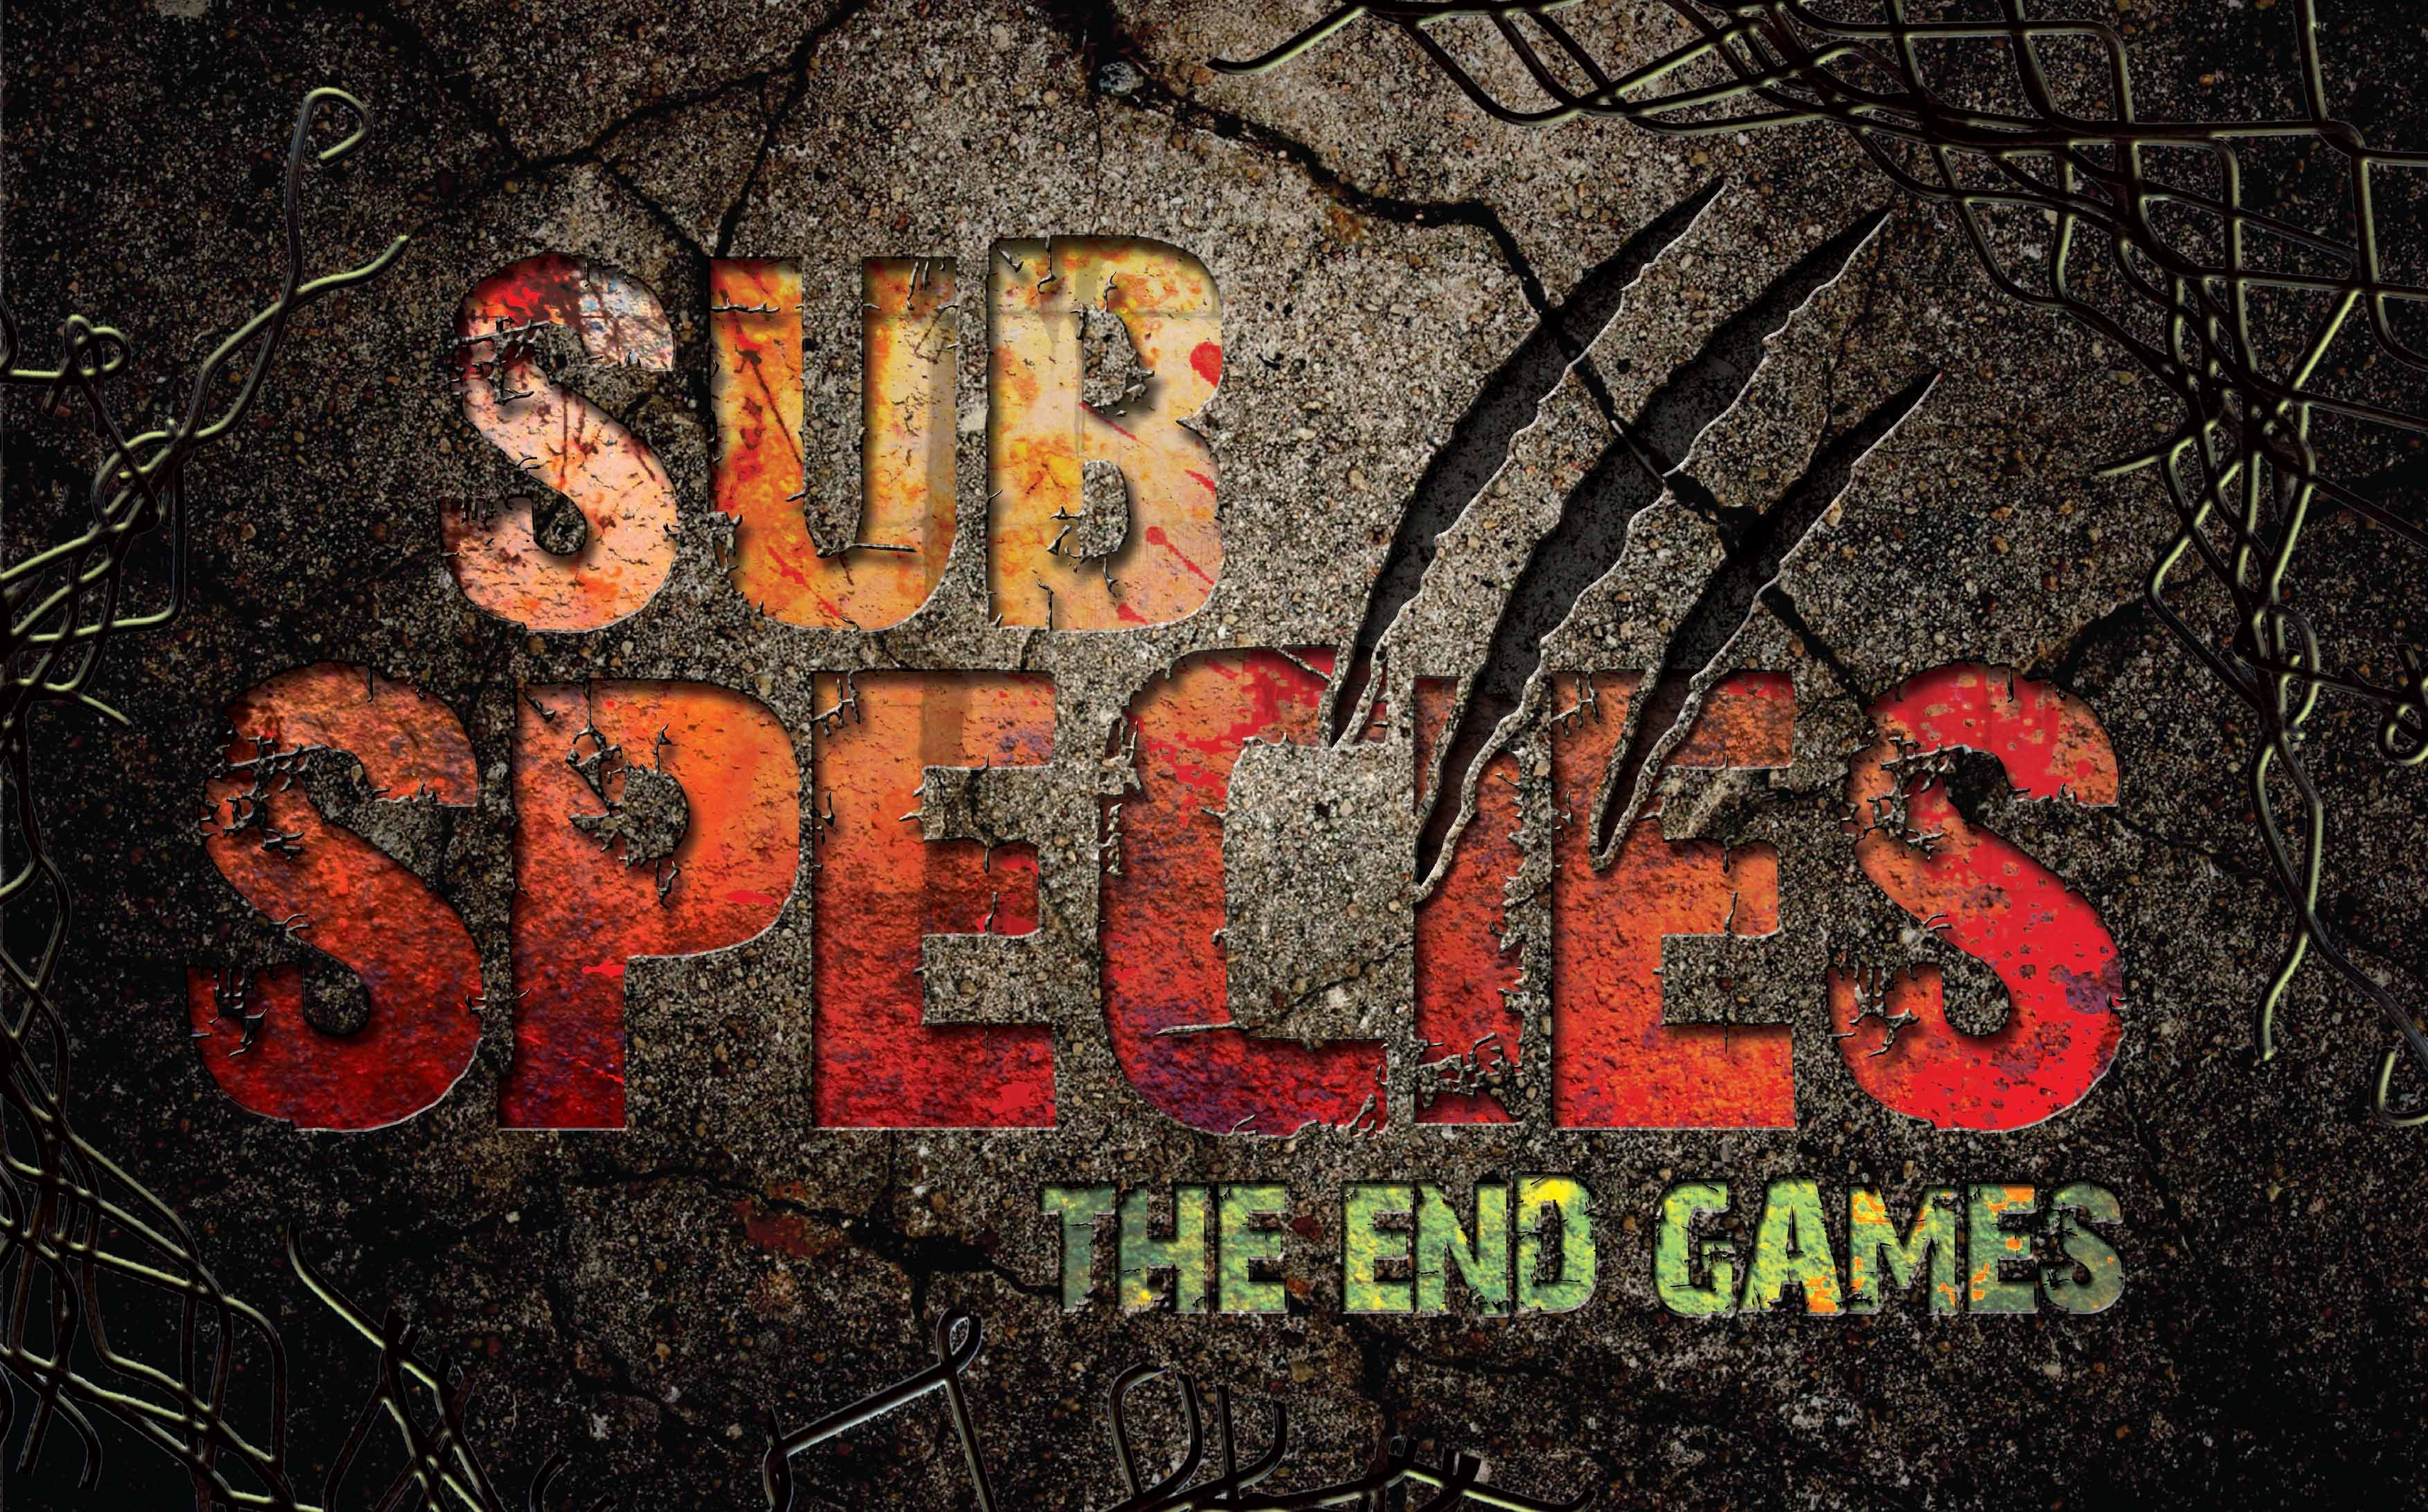 Sub Species - The End Games at Alton Towers Scarefest 2016